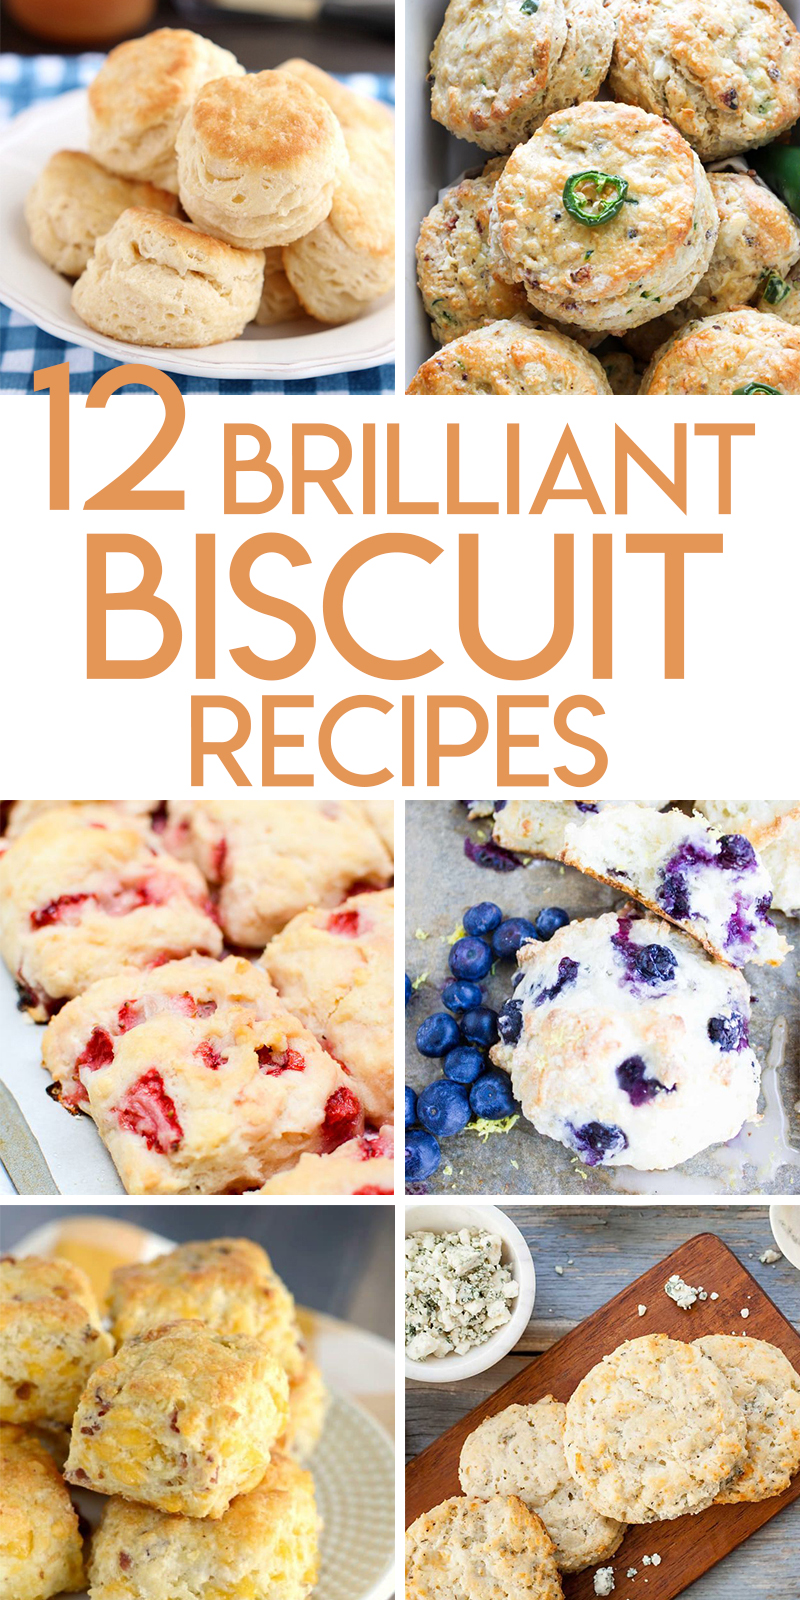 12 Brilliant Biscuit Recipes to Bake TODAY!